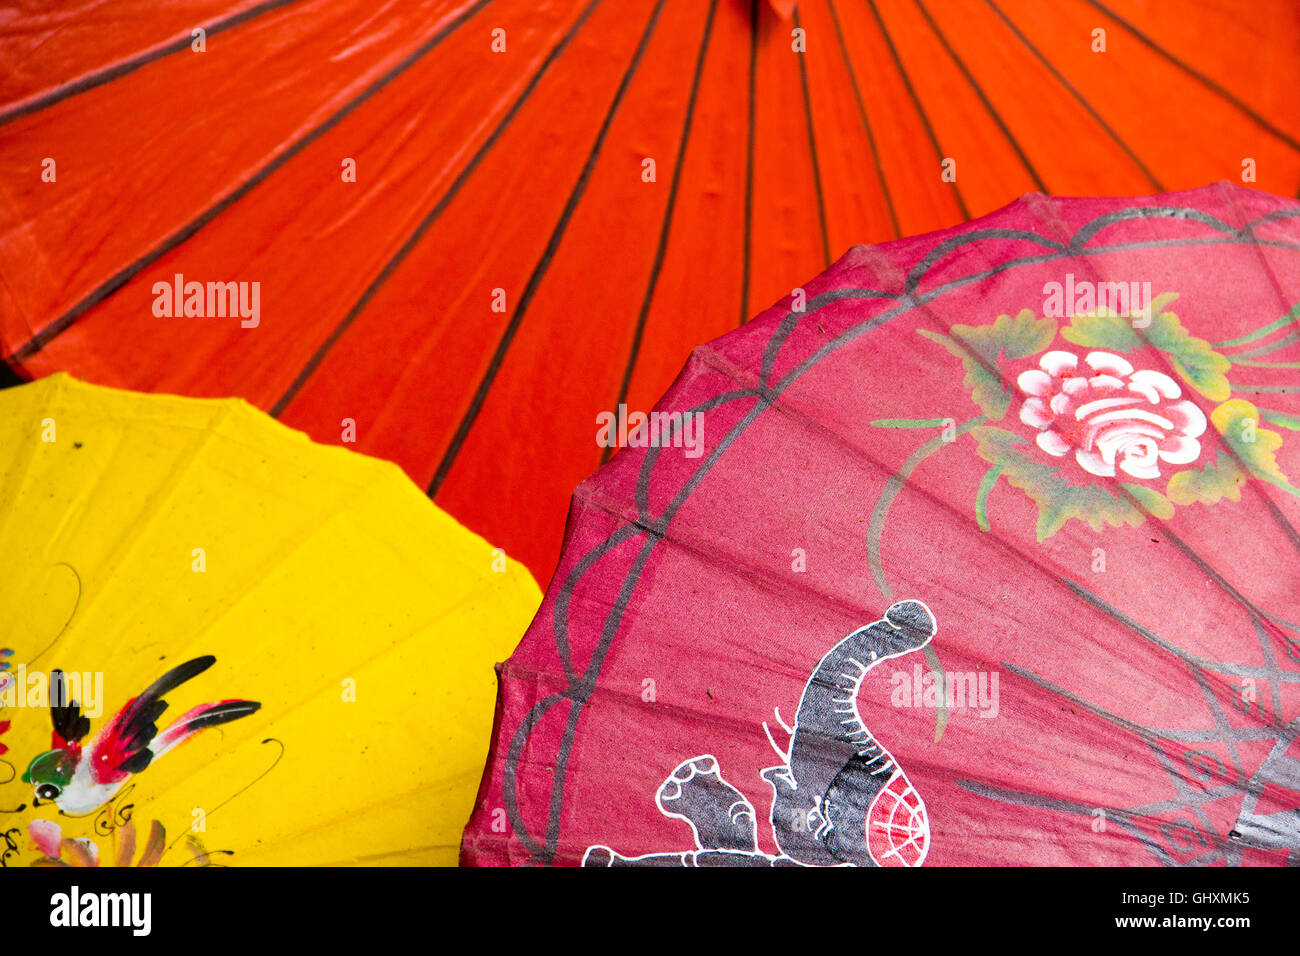 Colorful hand-crafted silk umbrellas at a market in Chiang Mai, Thailand - Stock Image